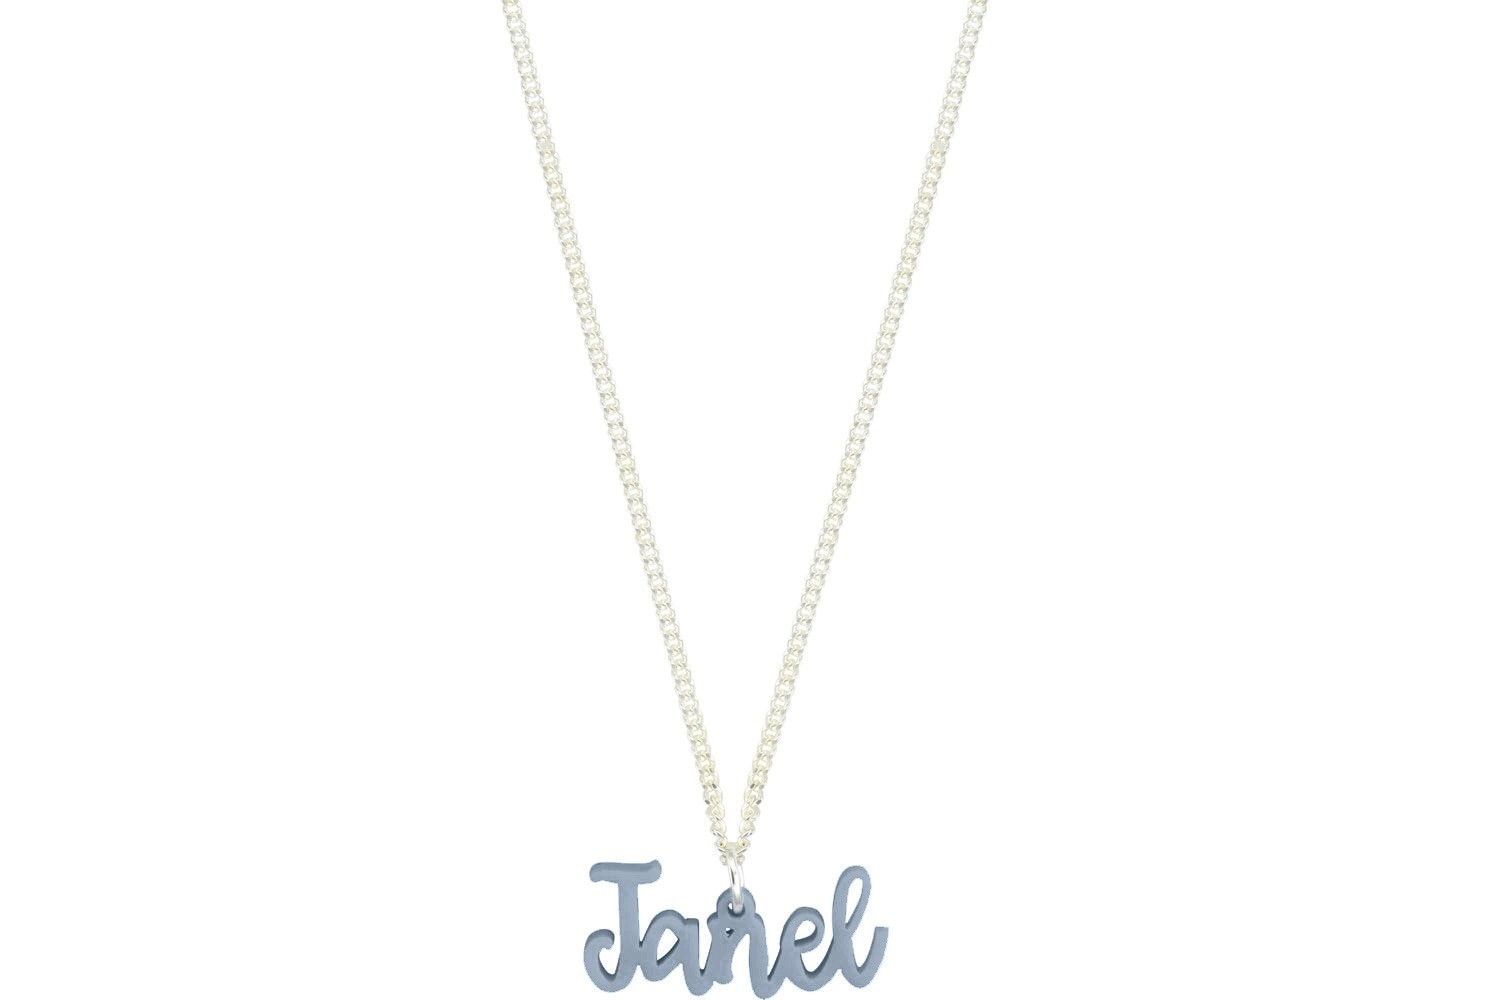 Name Style 1 with Chain Necklace